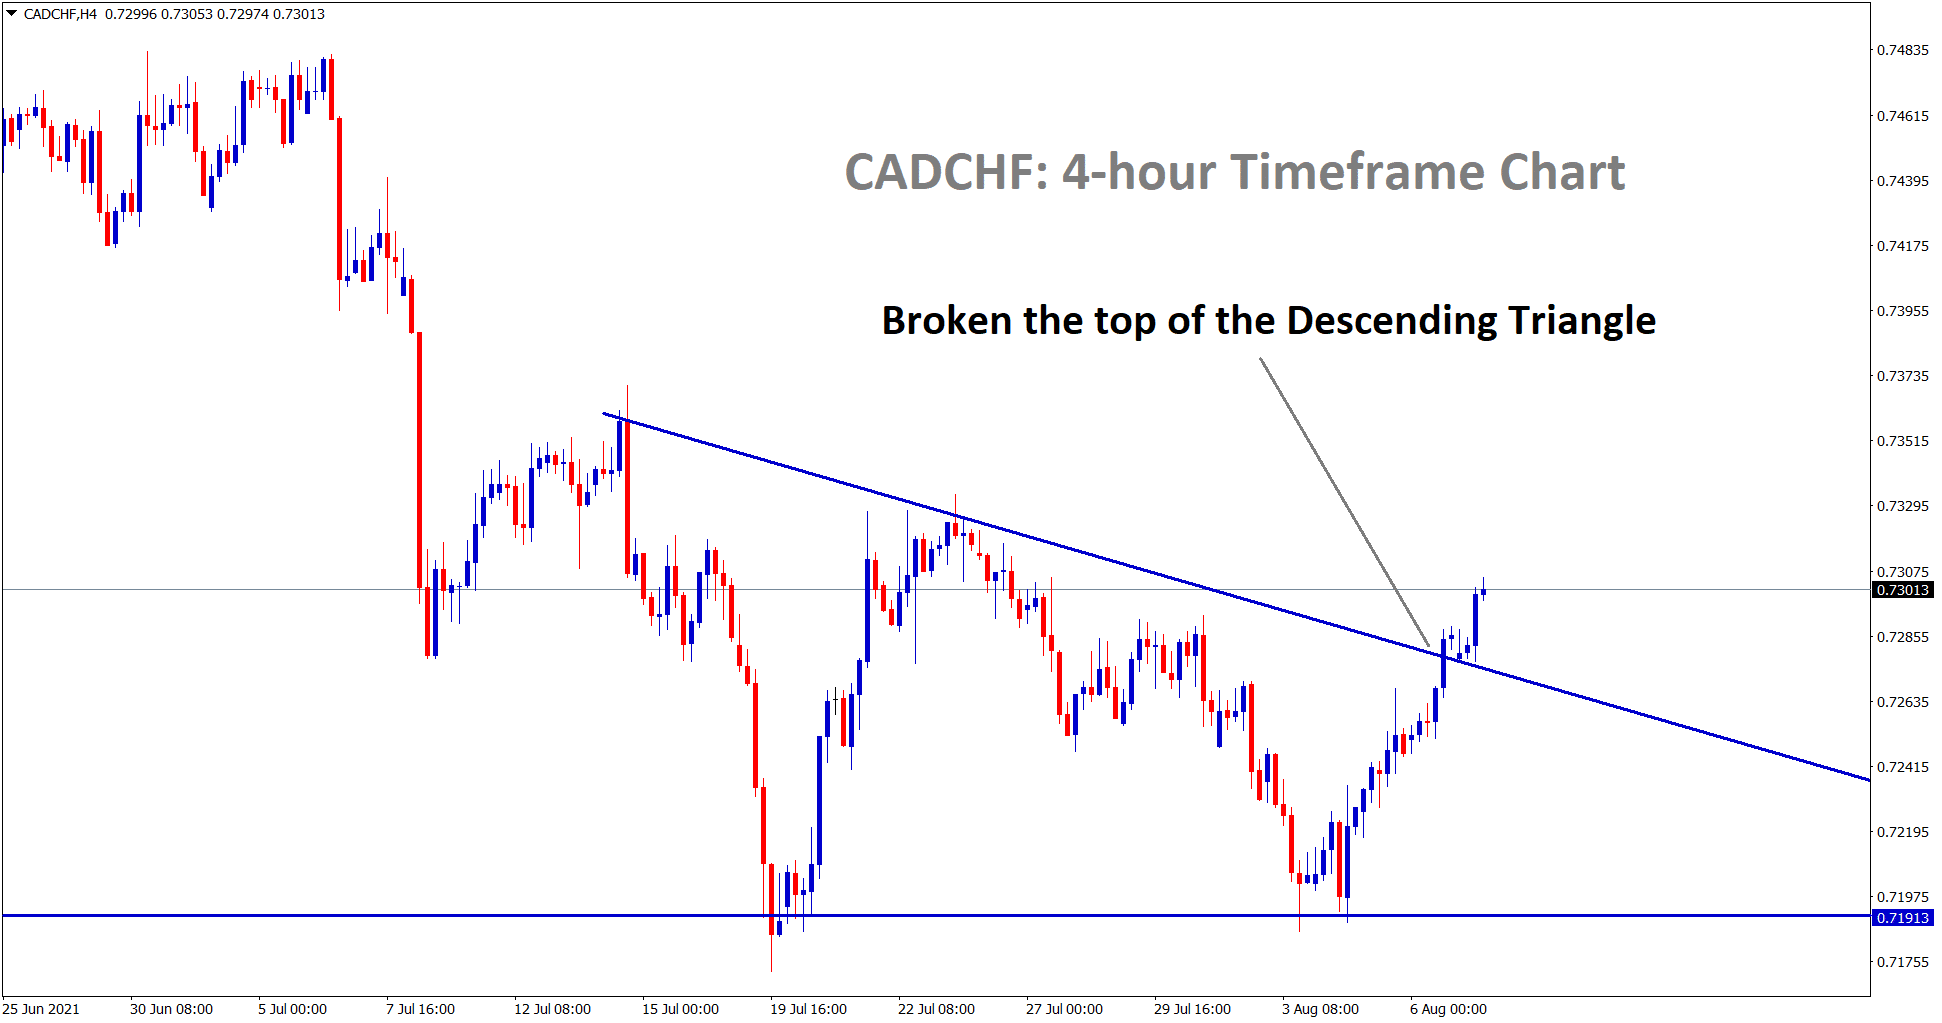 CADCHF has broken the top of the descending Triangle pattern in the 4hr chart